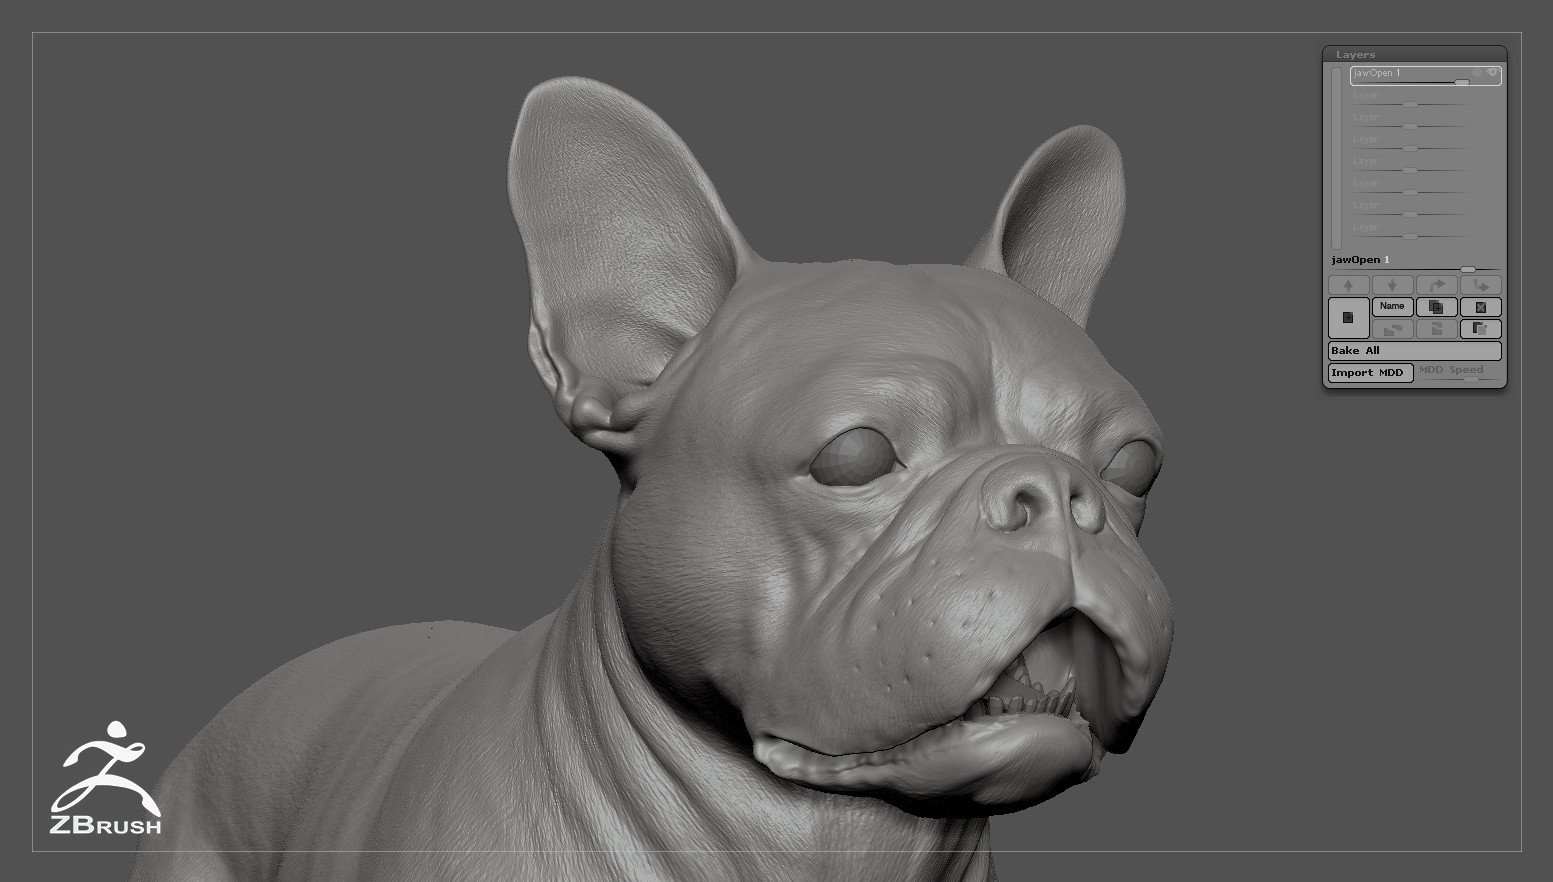 Frenchbulldog by alexlashko zbrush 06